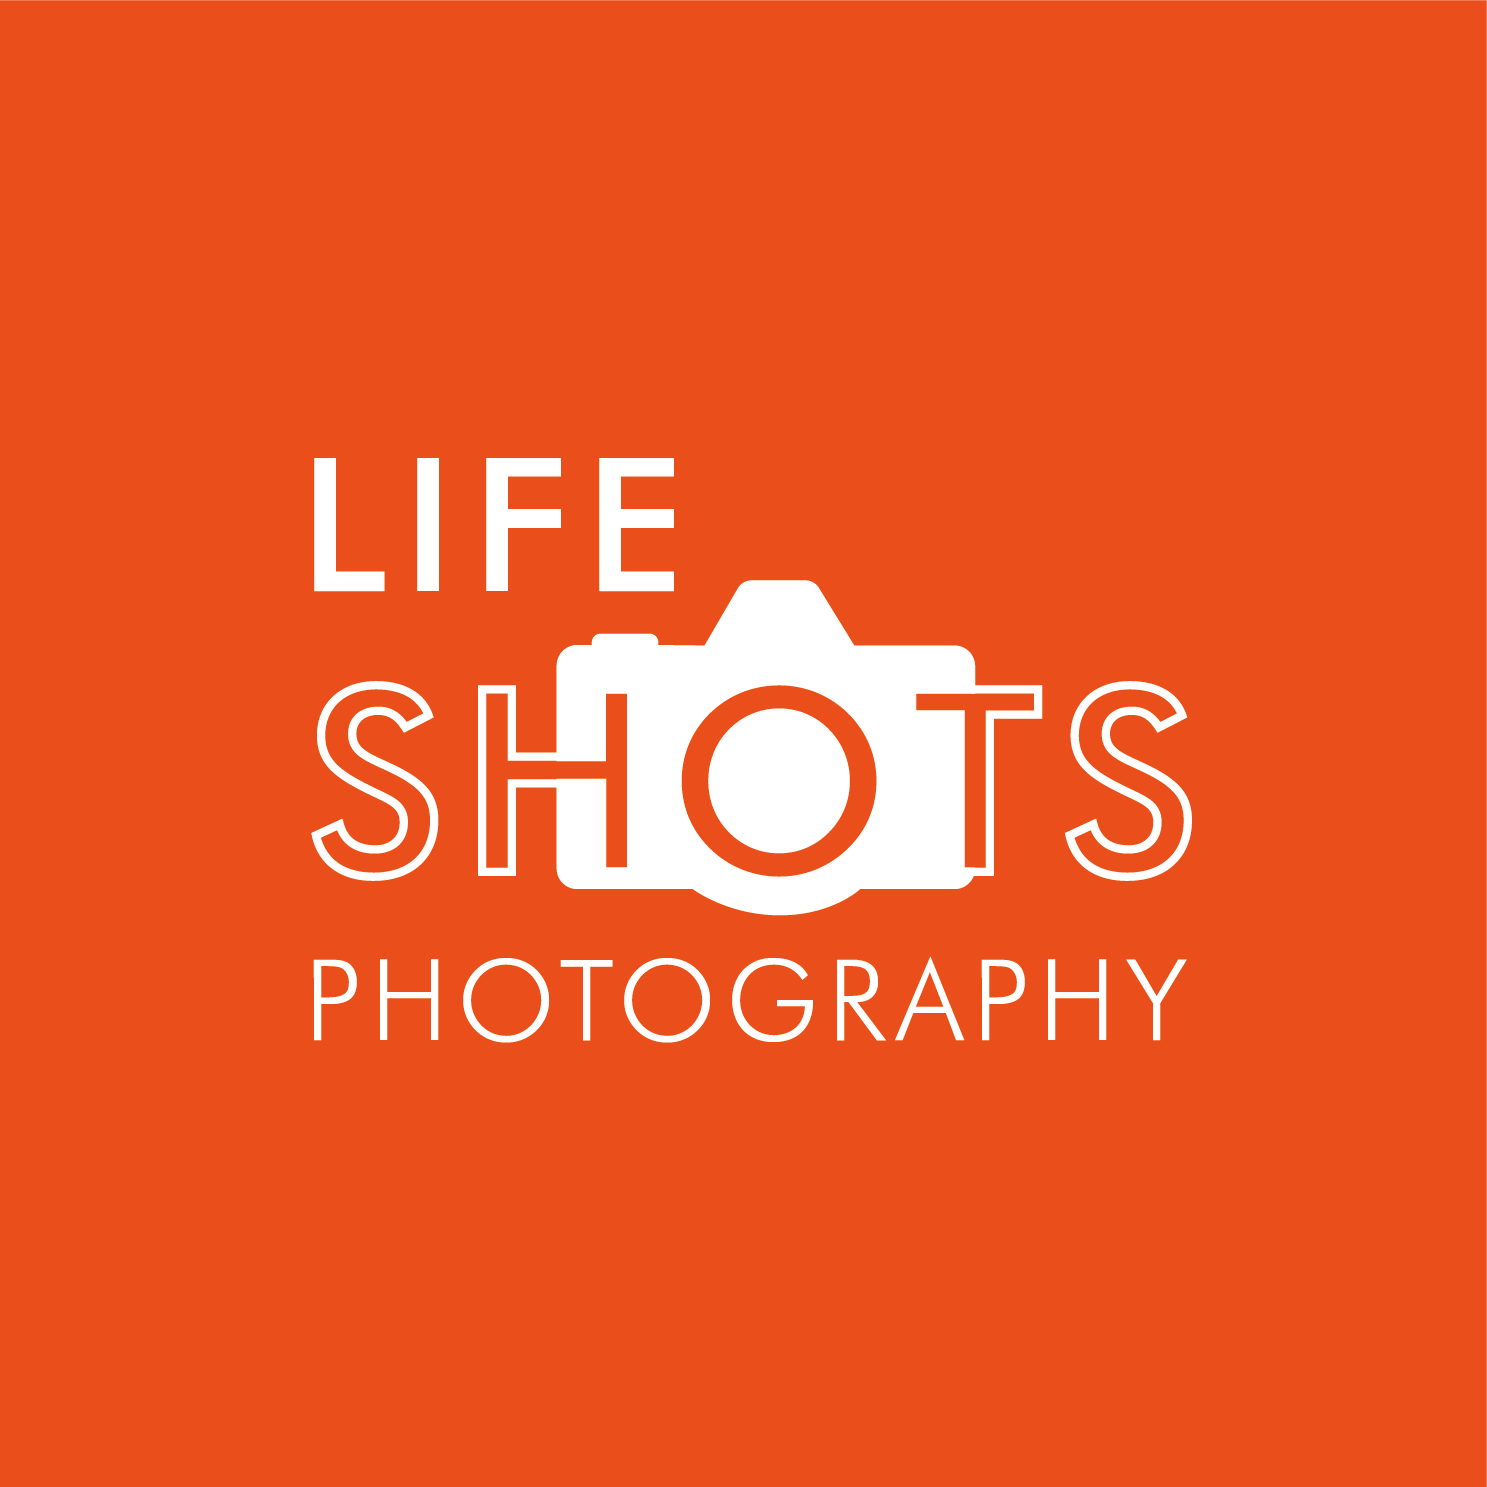 Lifeshots Photography